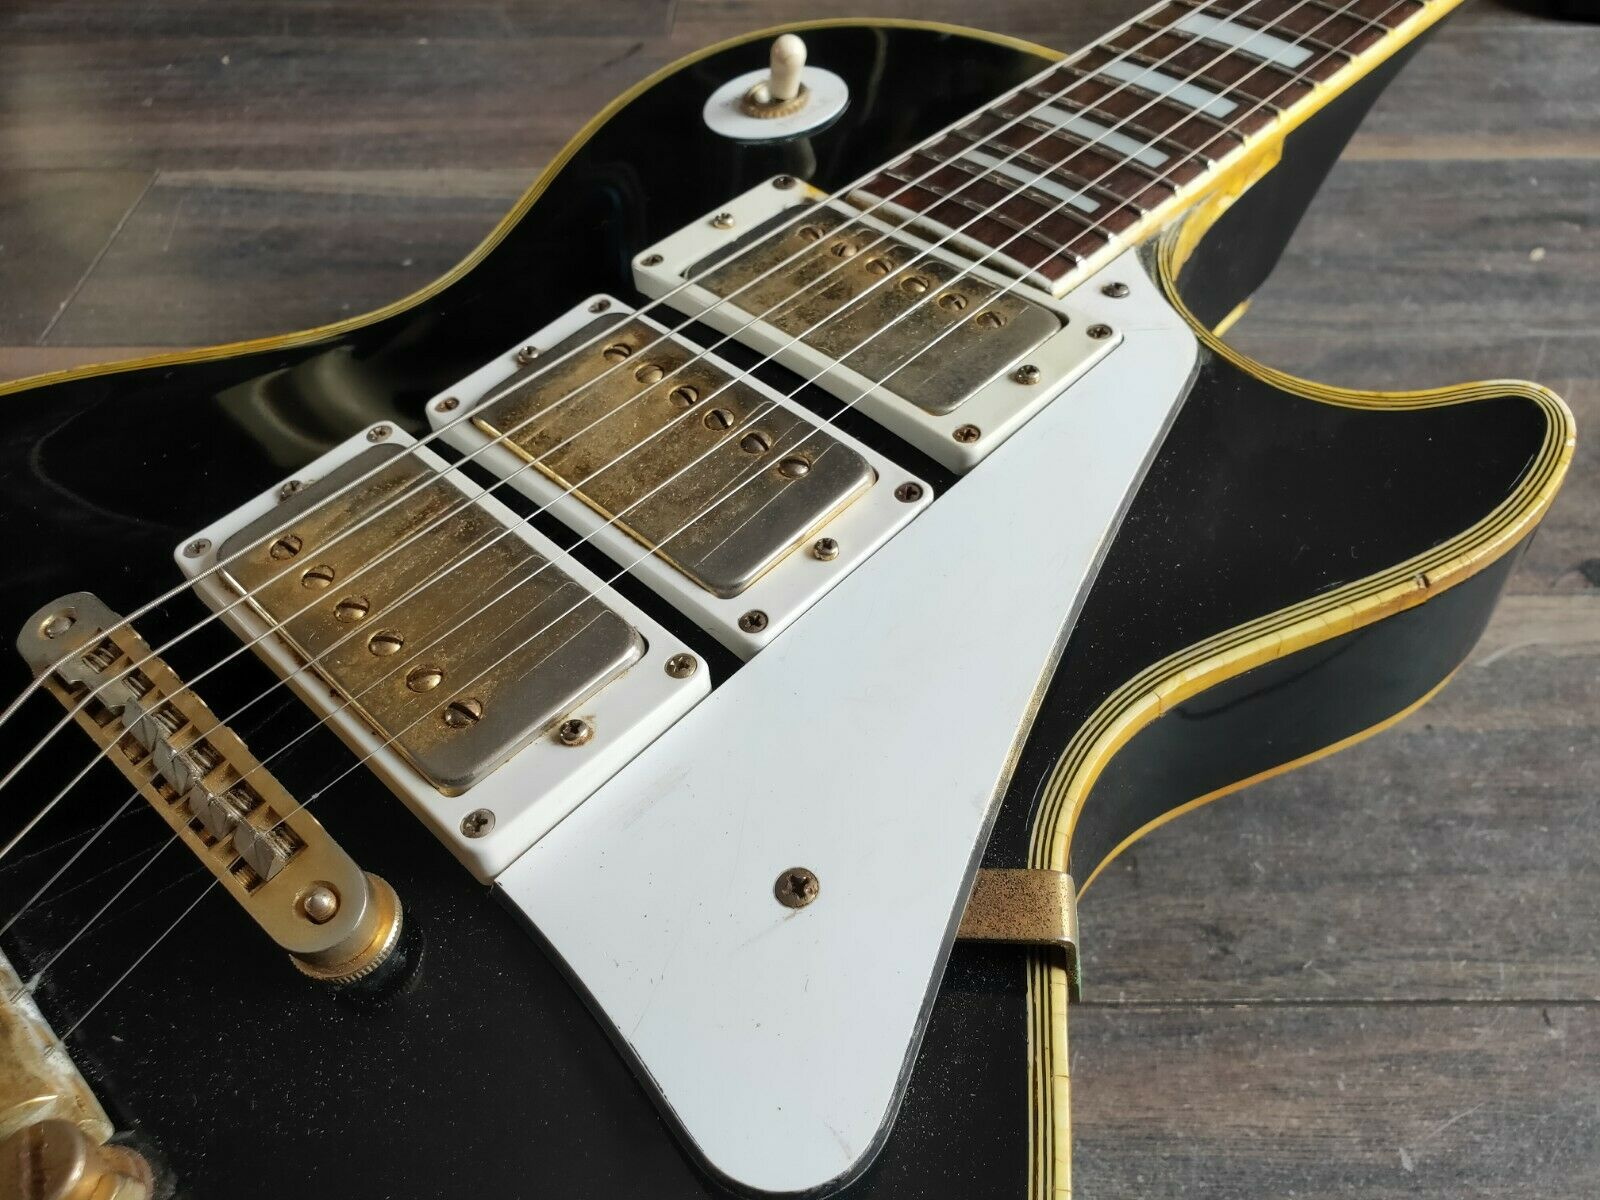 1977 Aria Pro II Japan LP600B Les Paul Custom (Black Beauty)